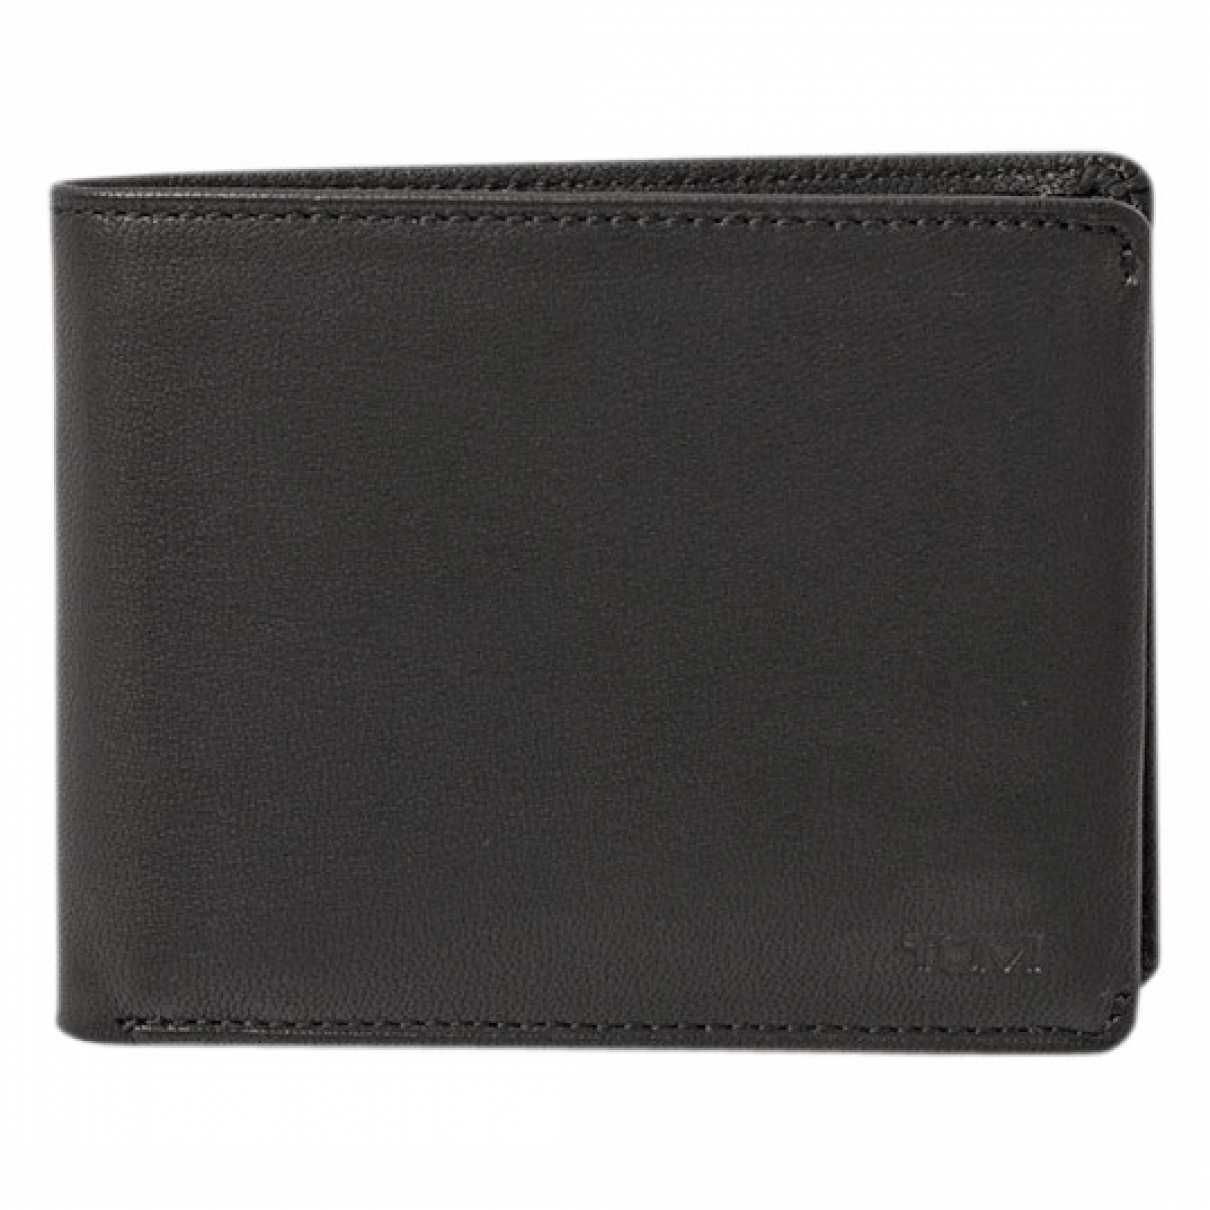 Tumi \N Black Leather wallet for Women \N